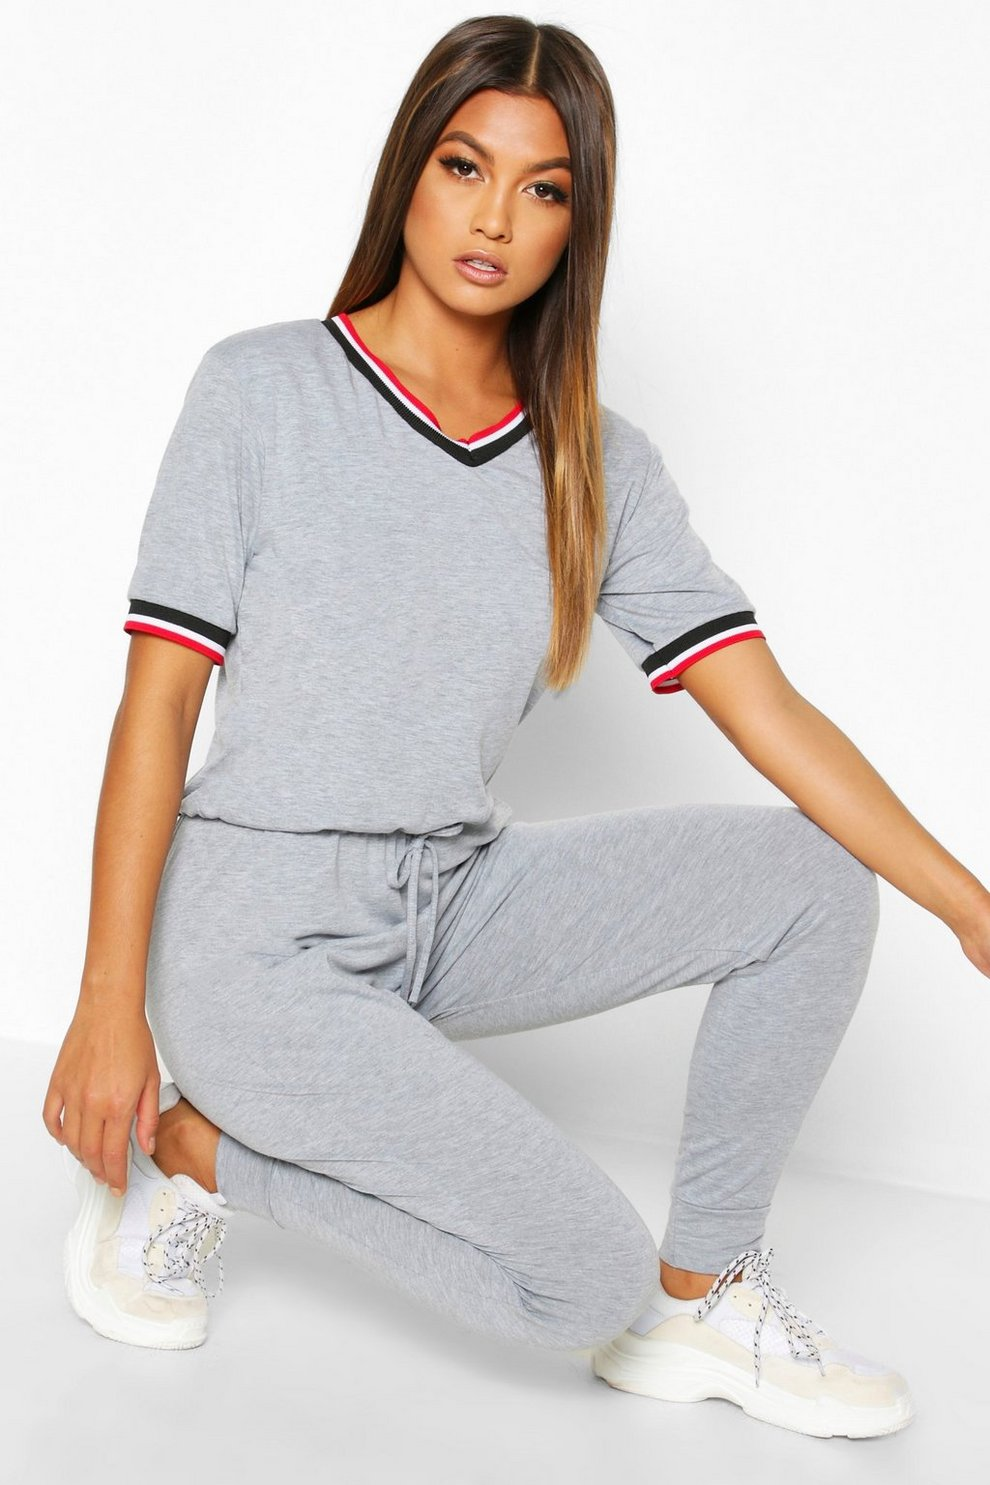 Cheap Best Seller Boohoo Sports Trim Jumpsuit Cheap Online Store Manchester Best Prices Cheap Online Clearance Pre Order YeJ3Ozyn